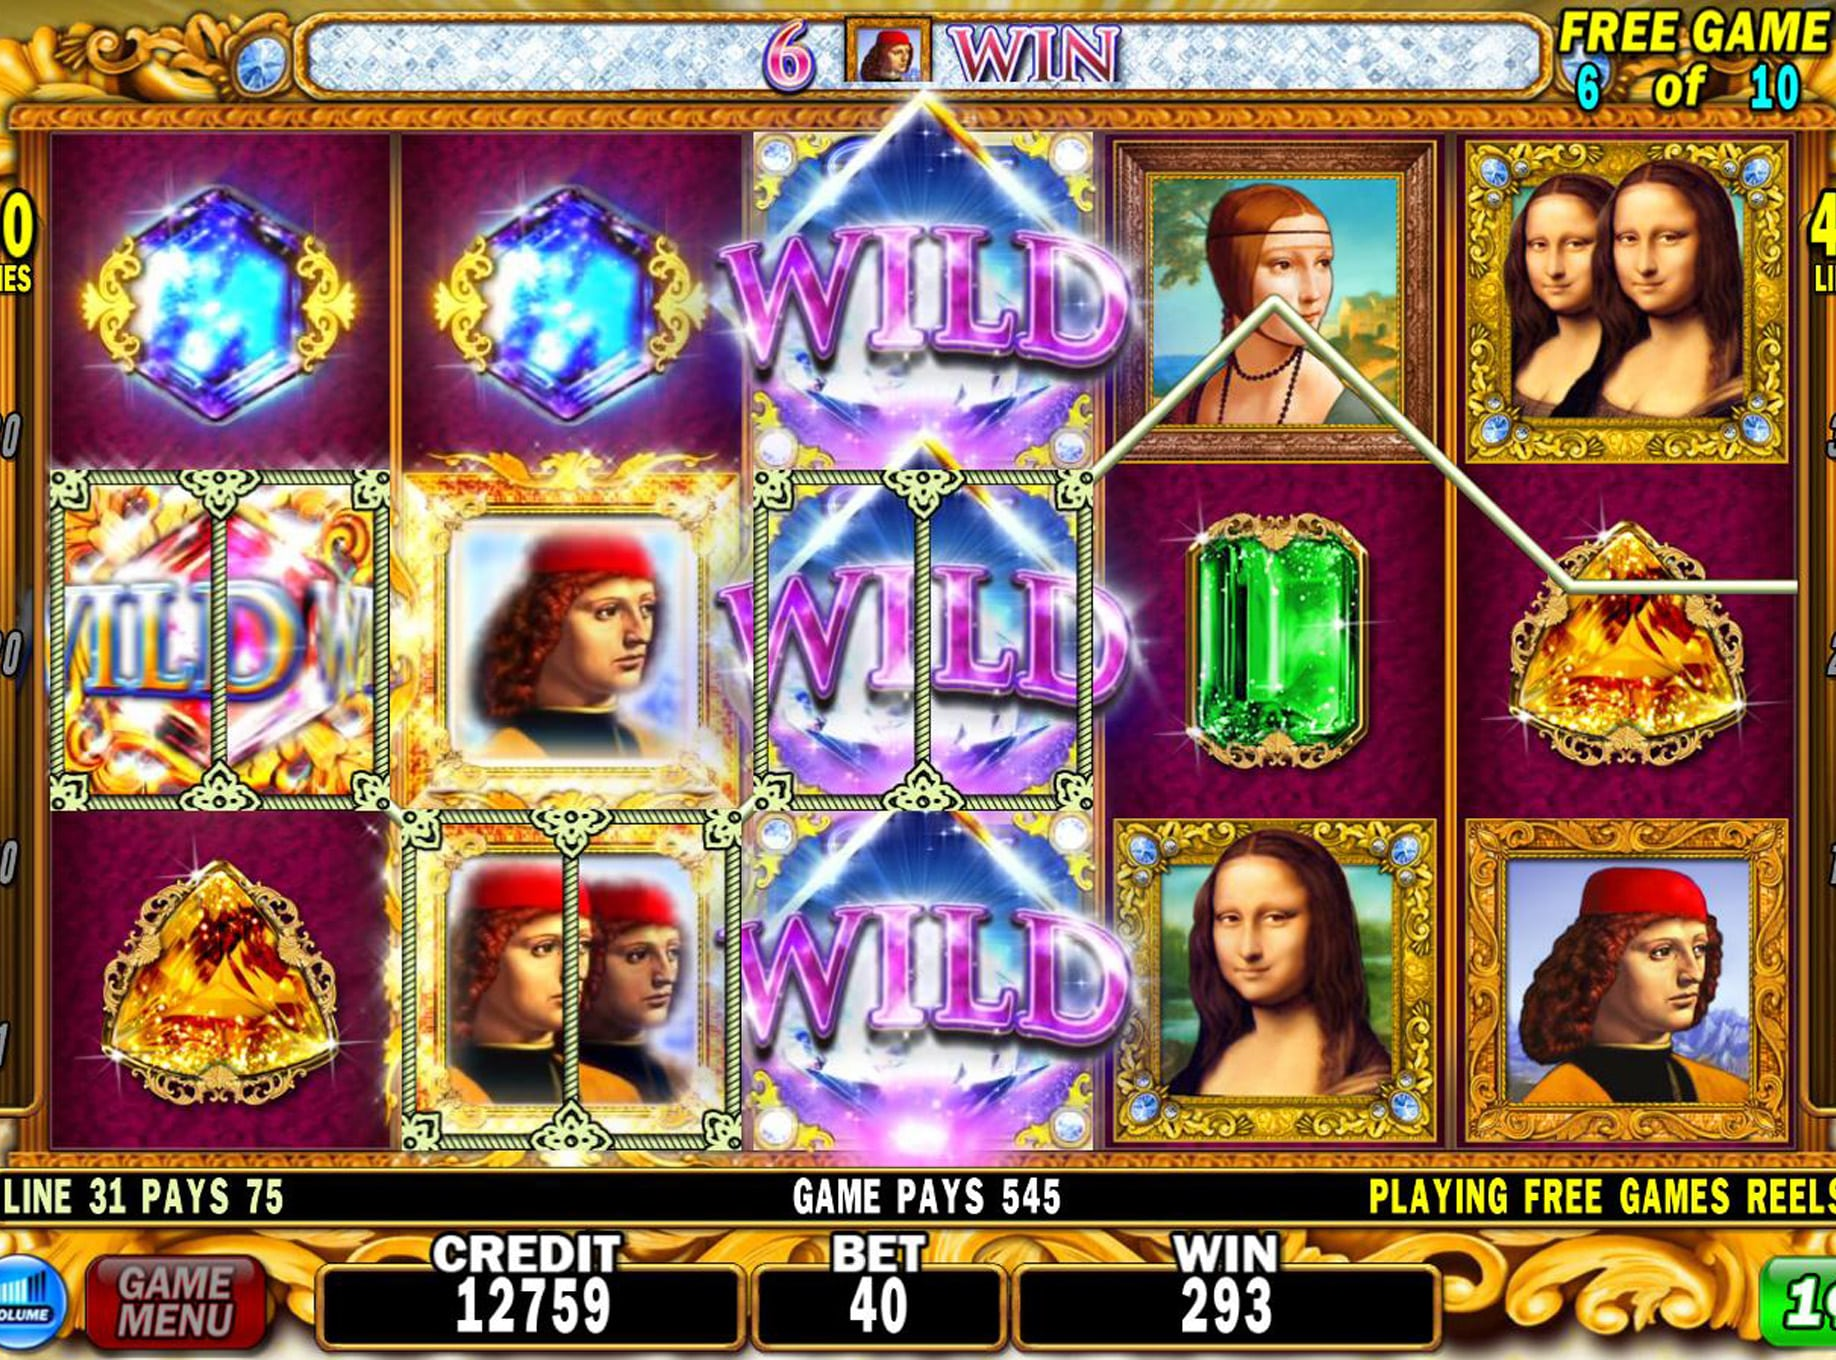 Over 400 Mobile Slots Games